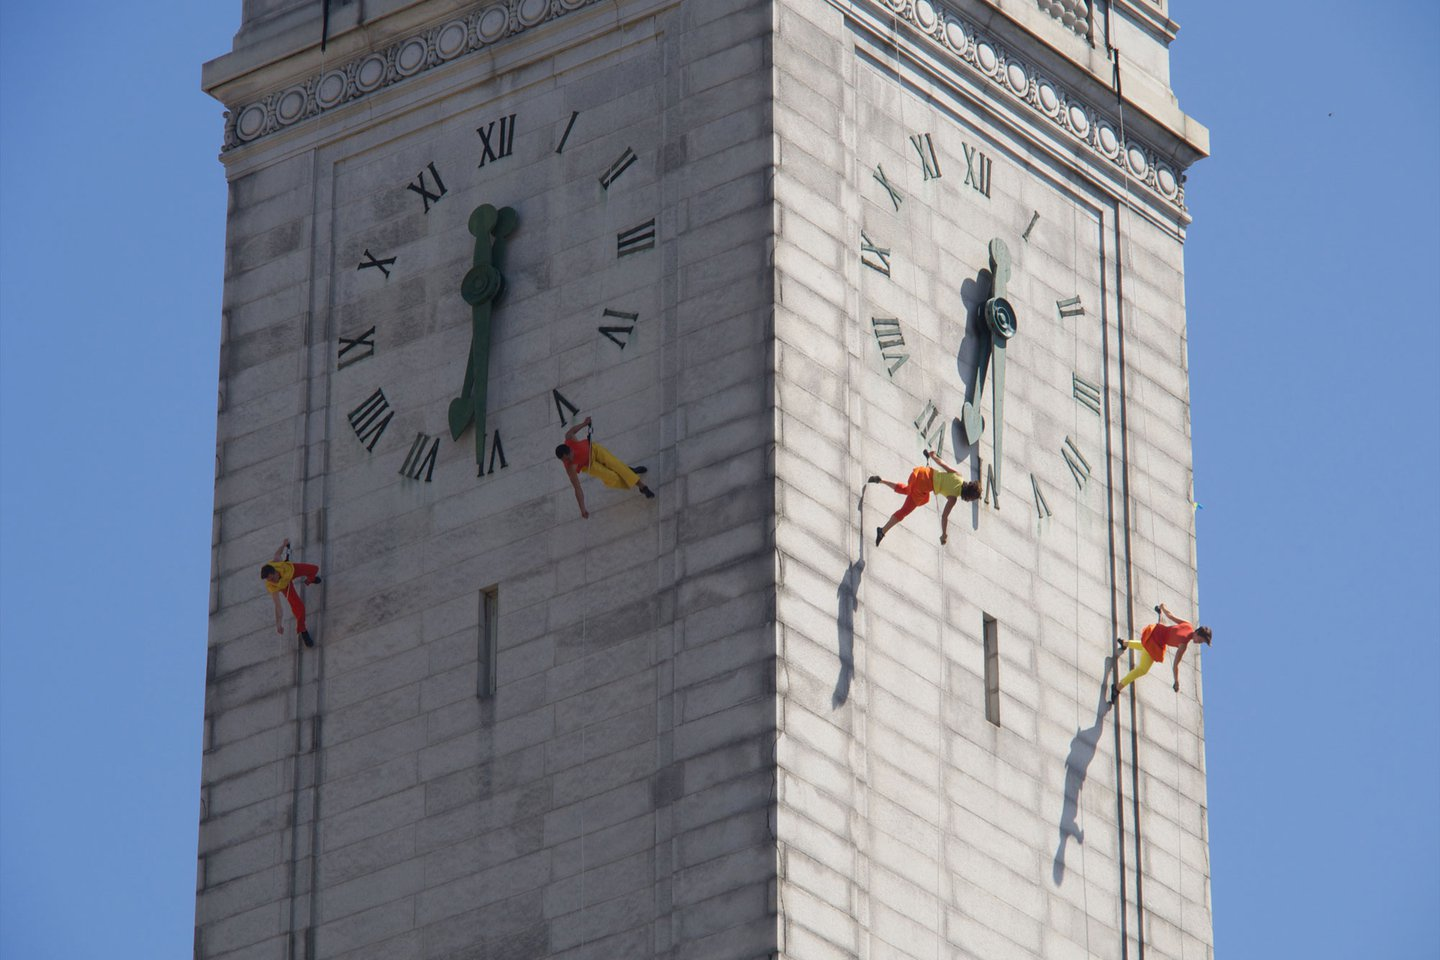 Photo of dancers in red tops and yellow pants hanging off the top of the Campanile.